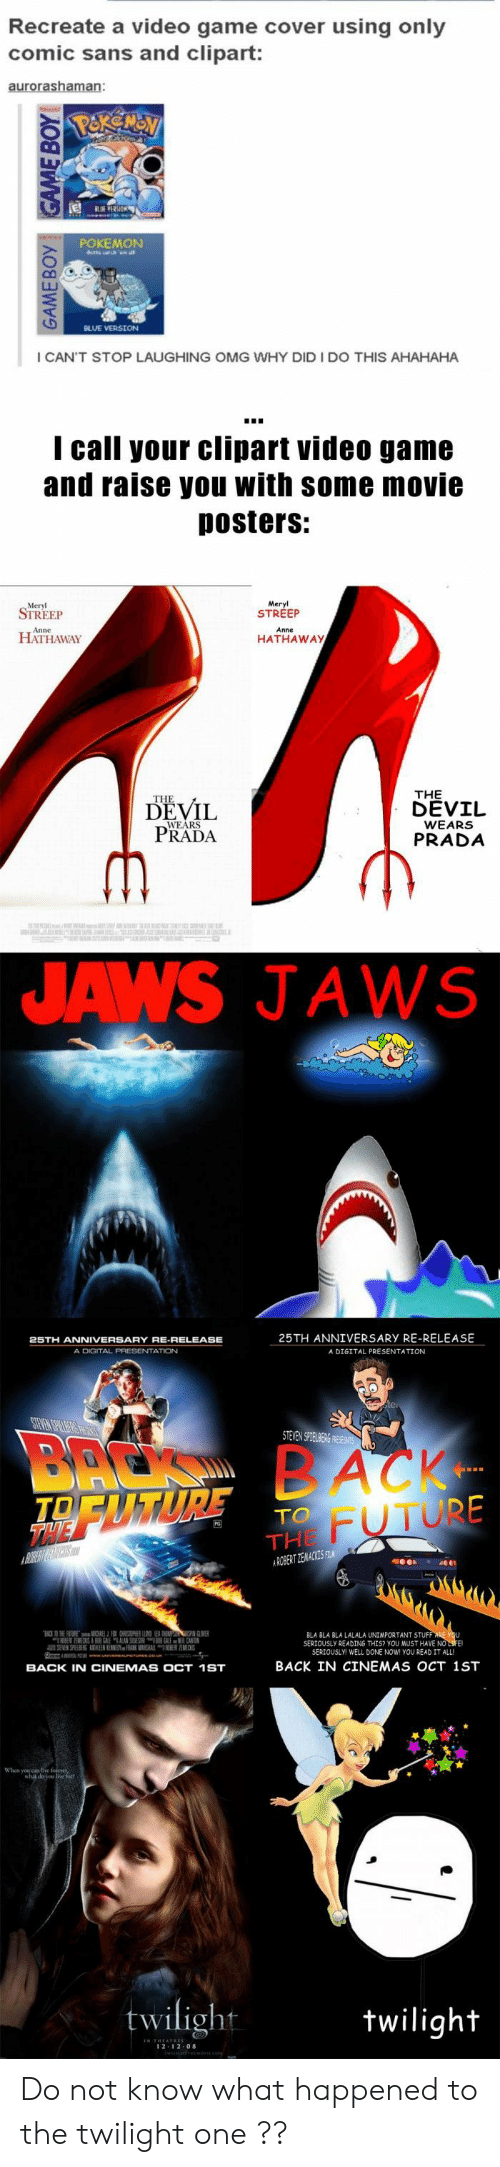 Omg Why: Recreate a video game cover using only  comic sans and clipart:  POKEMON  I CAN'T STOP LAUGHING OMG WHY DID I DO THIS AHAHAHA  I call your clipart video game  and raise you with some movie  Dosters:  Meryl  STREEP  STREEP  HATHAWAY  HATHAWAy  THE  DEVIL  DEVİL  PRADA  WEARS  PRADA  JAWS JAWS  25TH ANNIVERSARY RE-RELEASE  A DIGITAL PRESENTATION  A DIGITAL PRESENTATION  STEVENS TEABi  FUTURE  TO  THE  益NER  BLA BLA BLA LALALA UNİMPORTANT STUF  SERJOUSLY READING THES? YOU MUST HAVE NO  SERIOUSLY WELL DONE NOW YOU READ IT ALL  BACK IN CINEMAS OCT 1ST  BACK IN CINEMAS OCT 1ST  twilight  wiligh  2 12 0 Do not know what happened to the twilight one ??